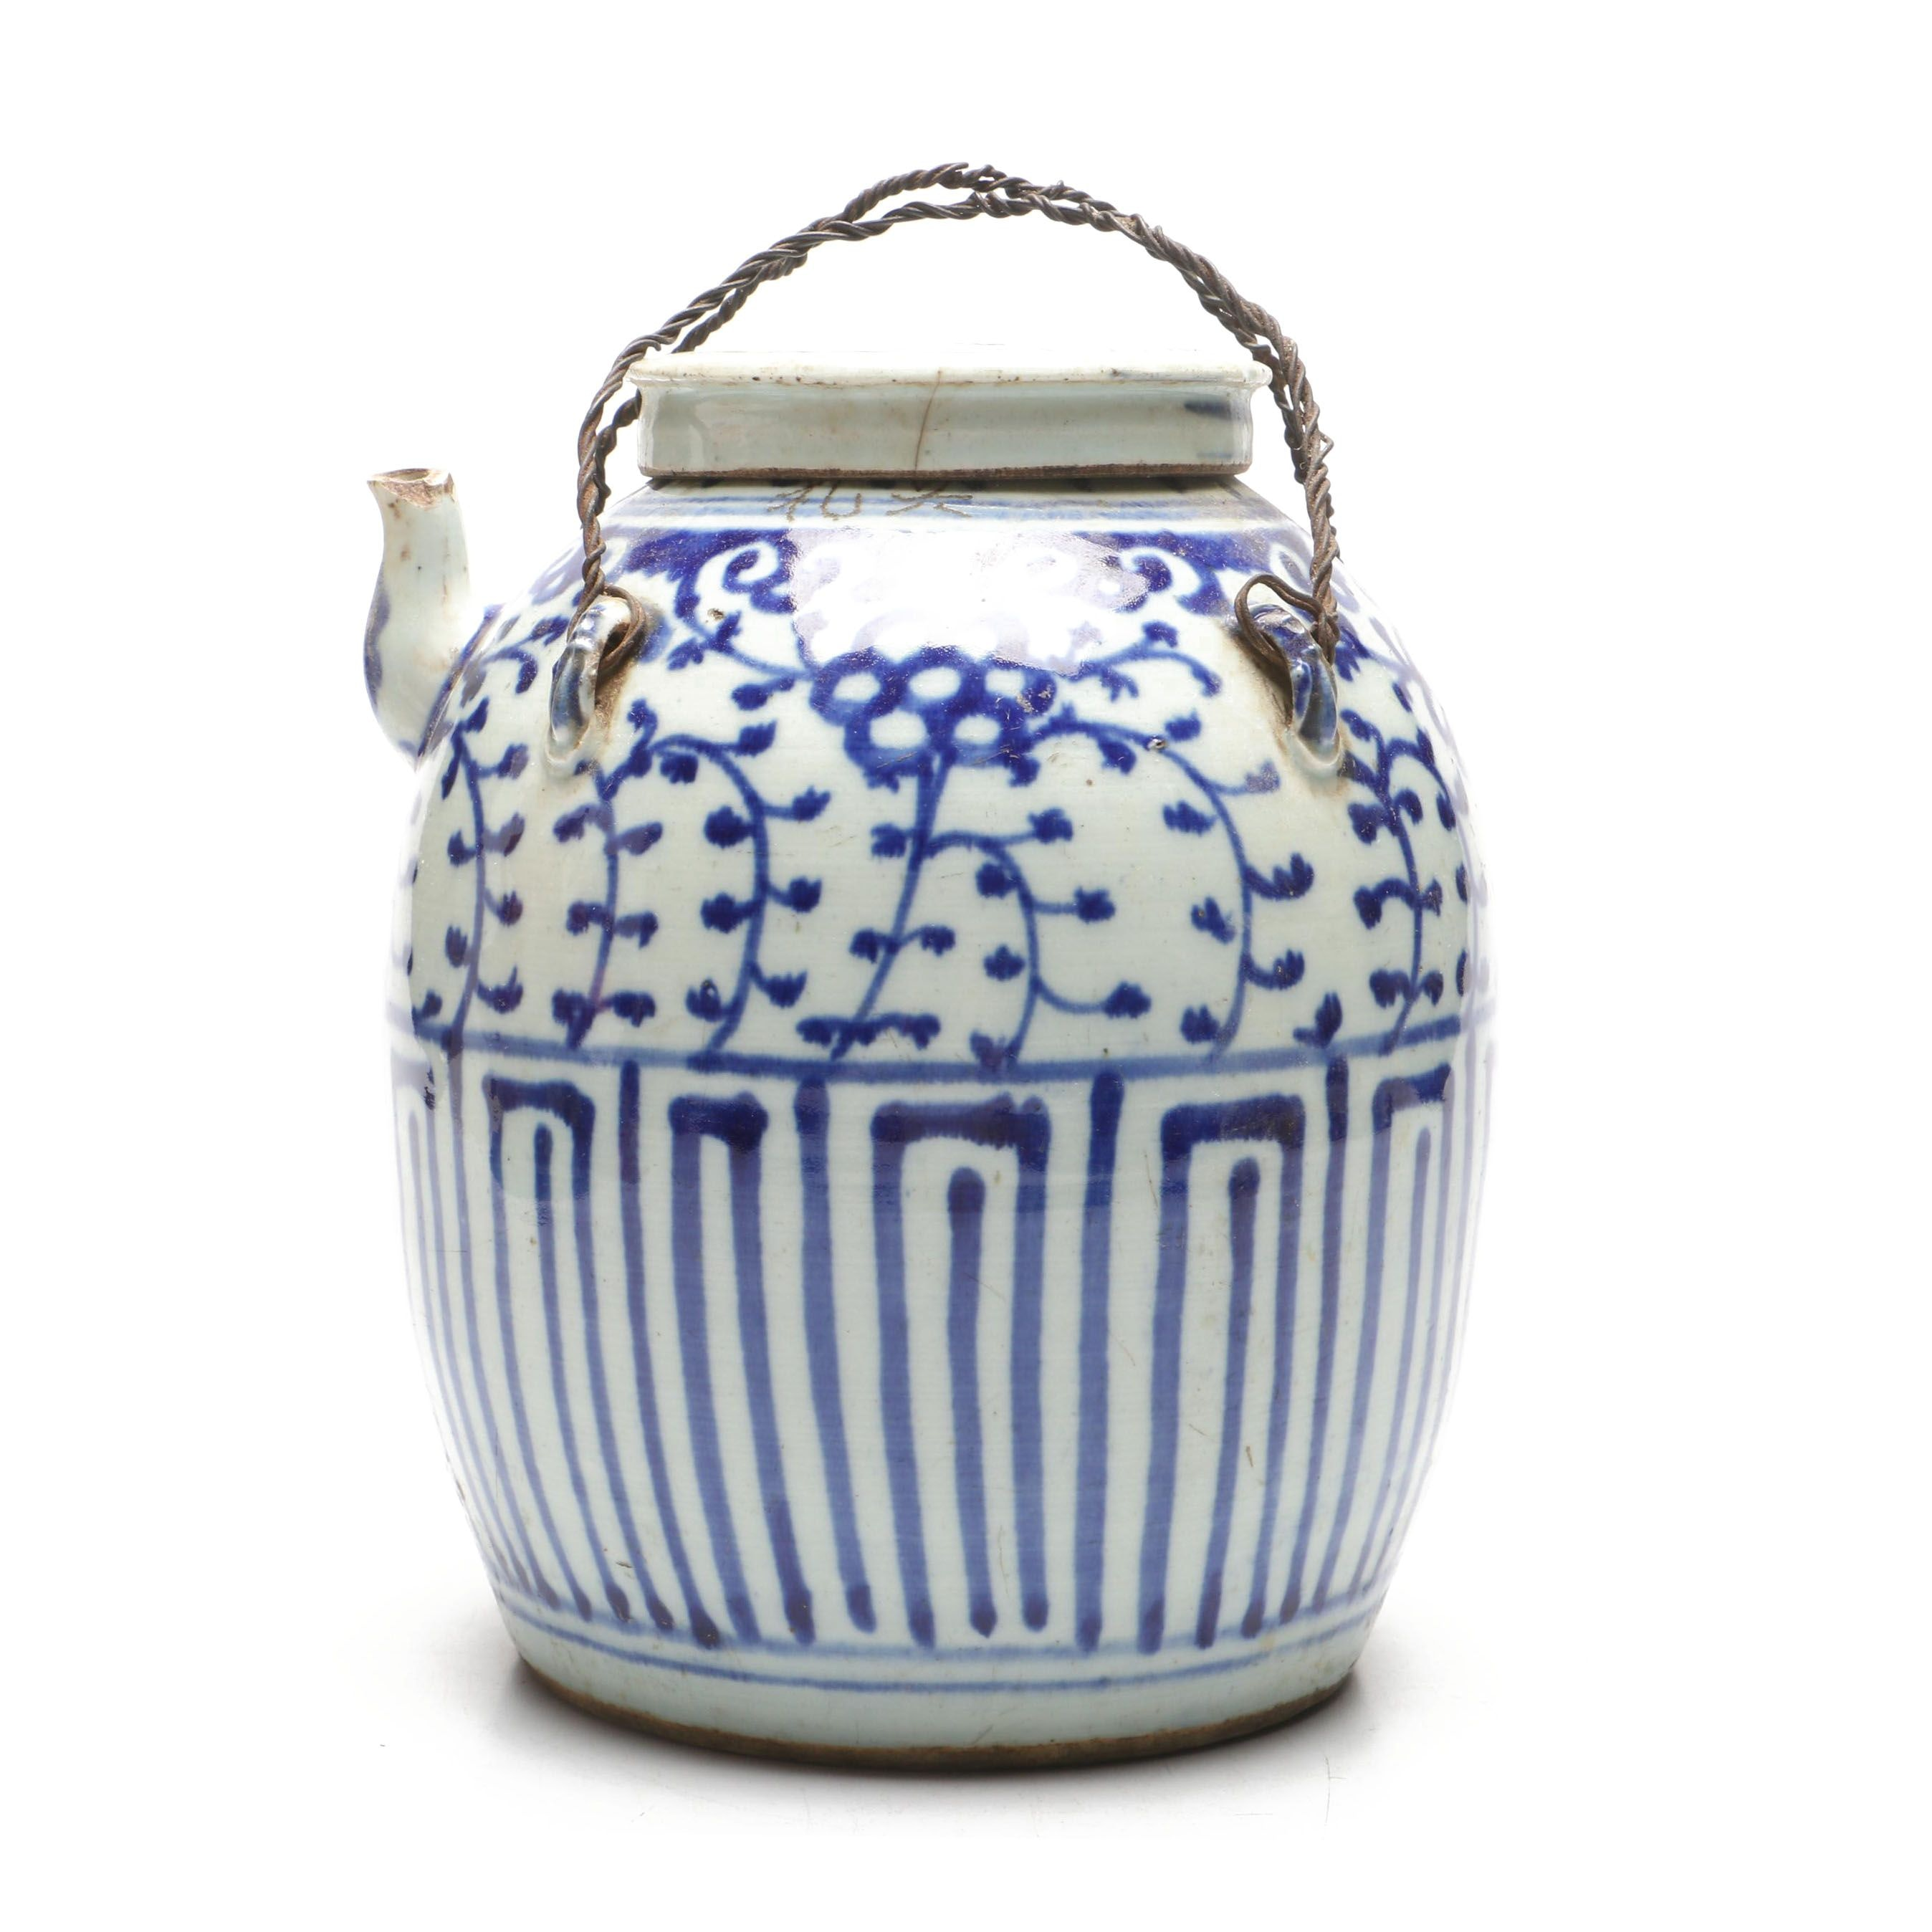 Chinese Ceramic Lidded Pitcher with Handles